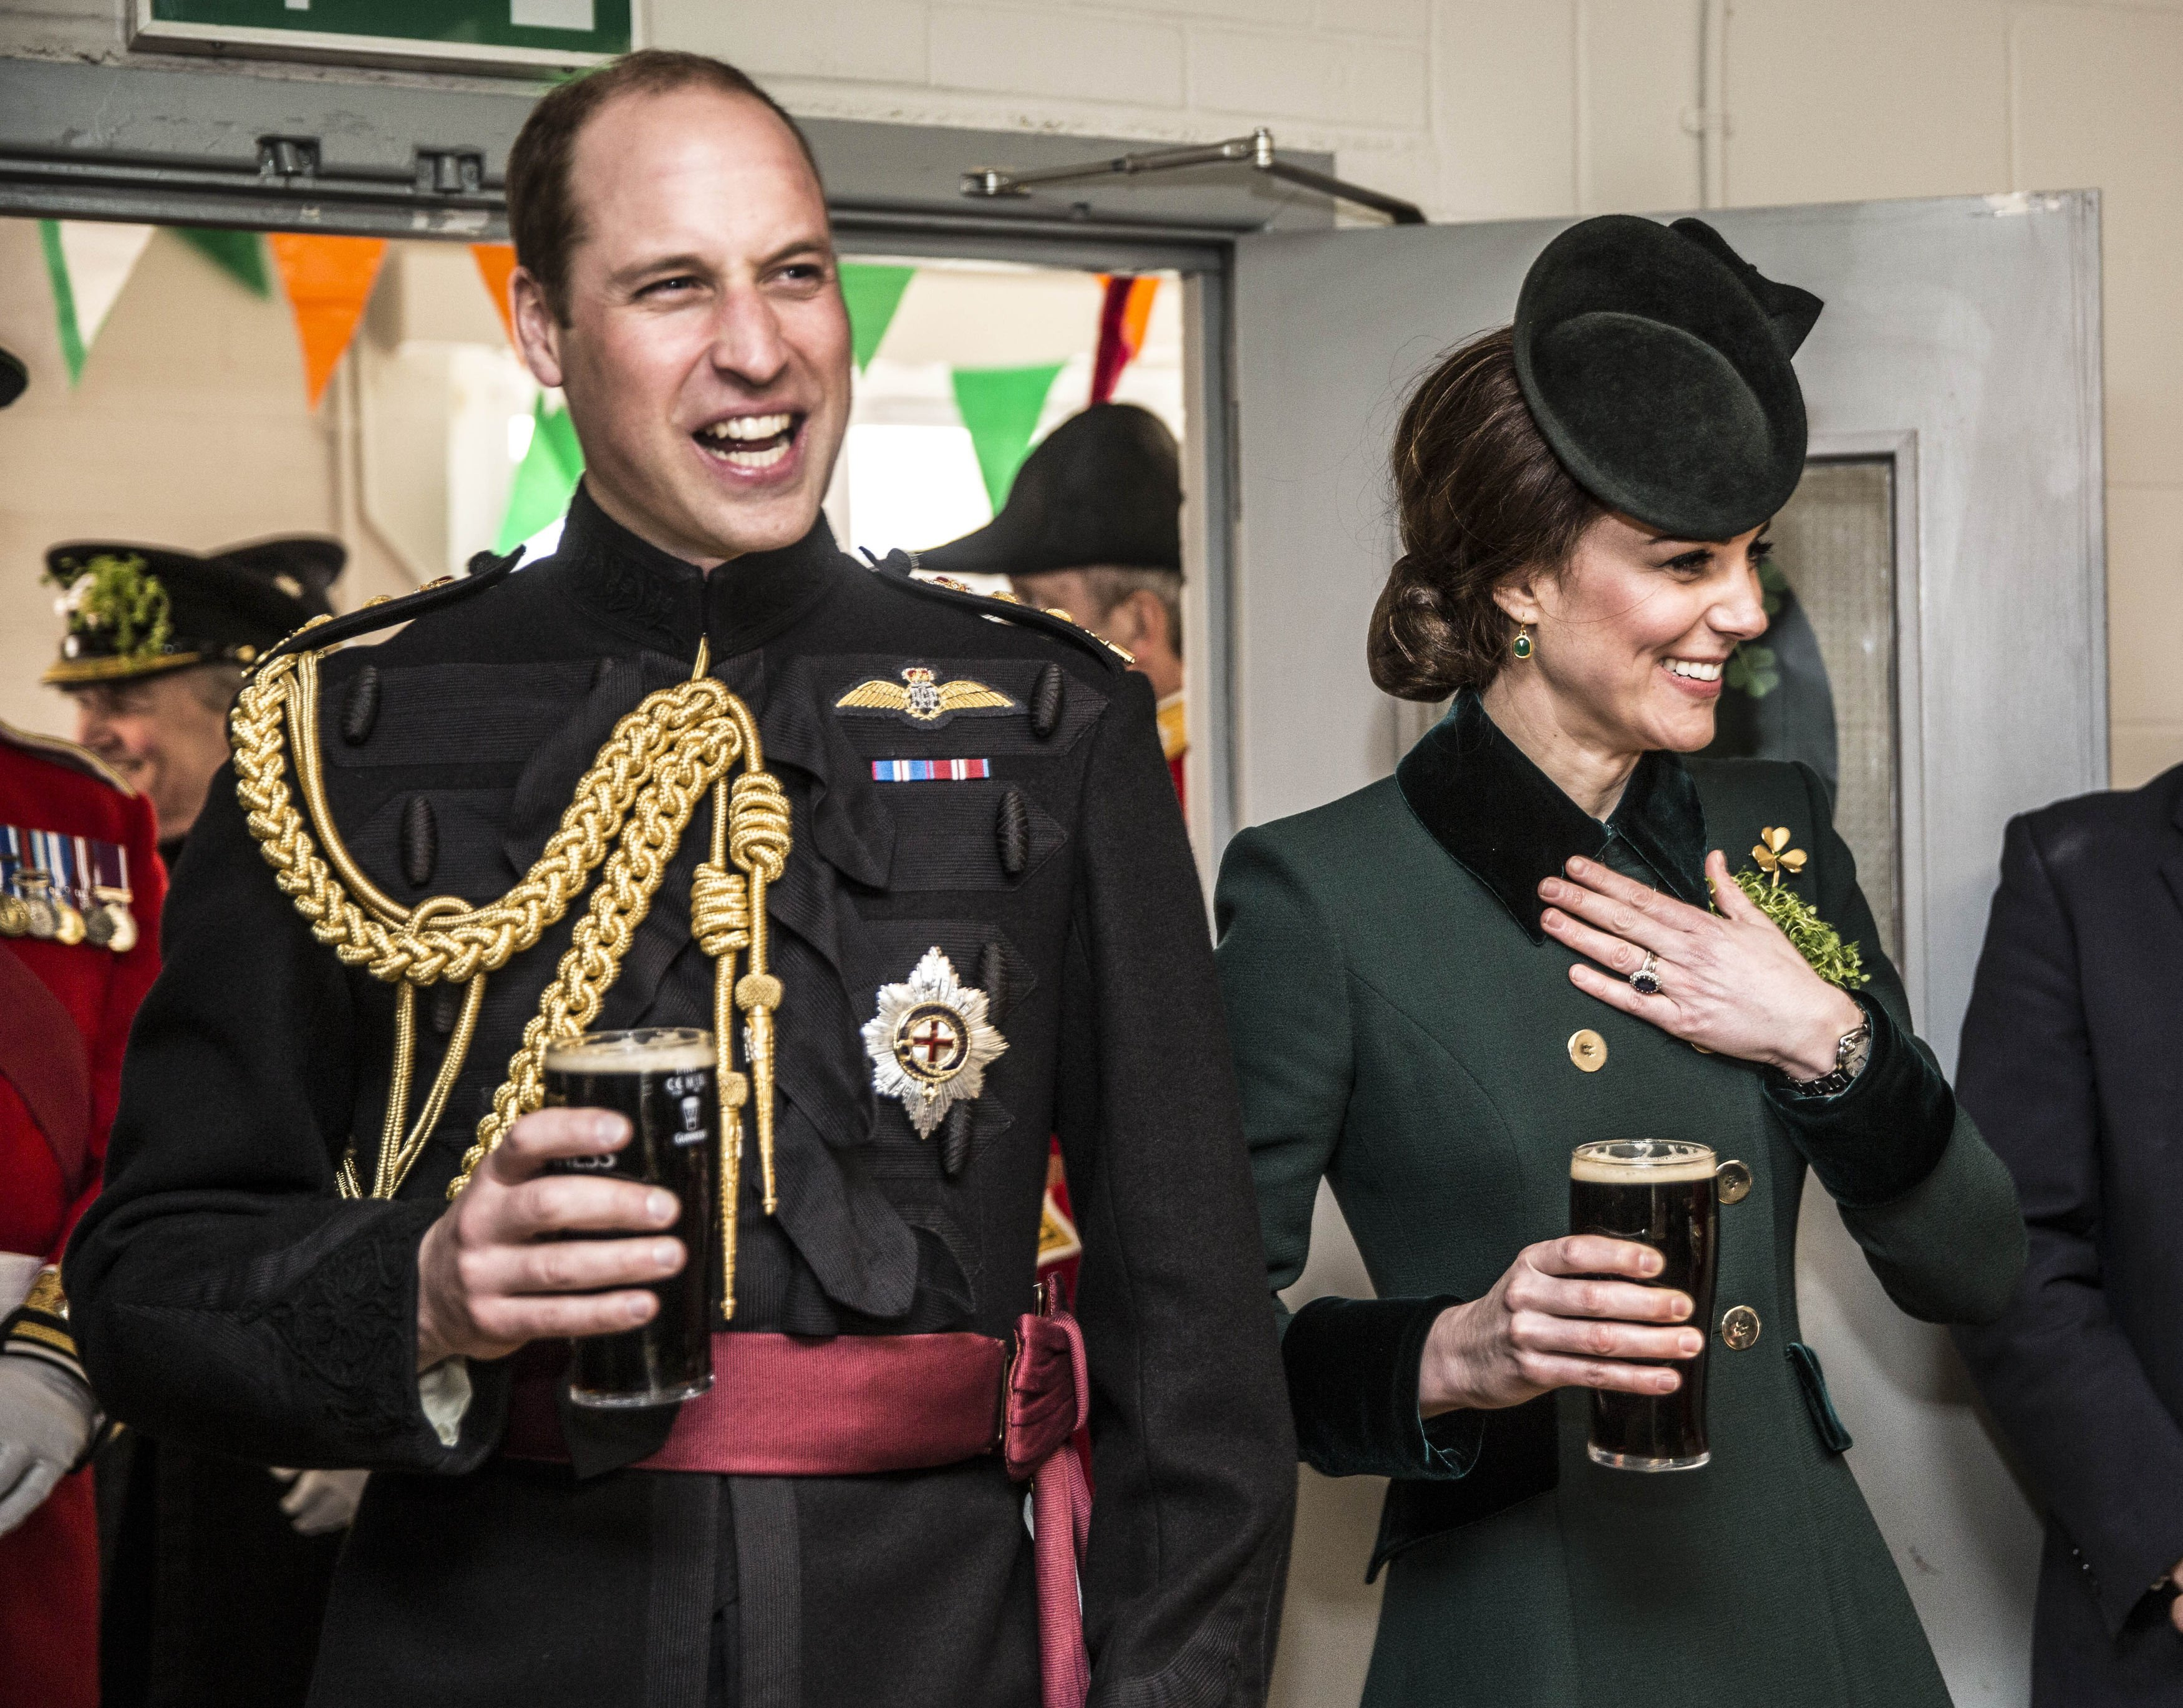 The Duke and Duchess of Cambridge stand with pints of Guinness in their hands as they meet with soldiers of the 1st Battalion Irish Guards in their canteen following their St. Patrick's Day parade at Cavalry Barracks, Hounslow on March 17, 2017.